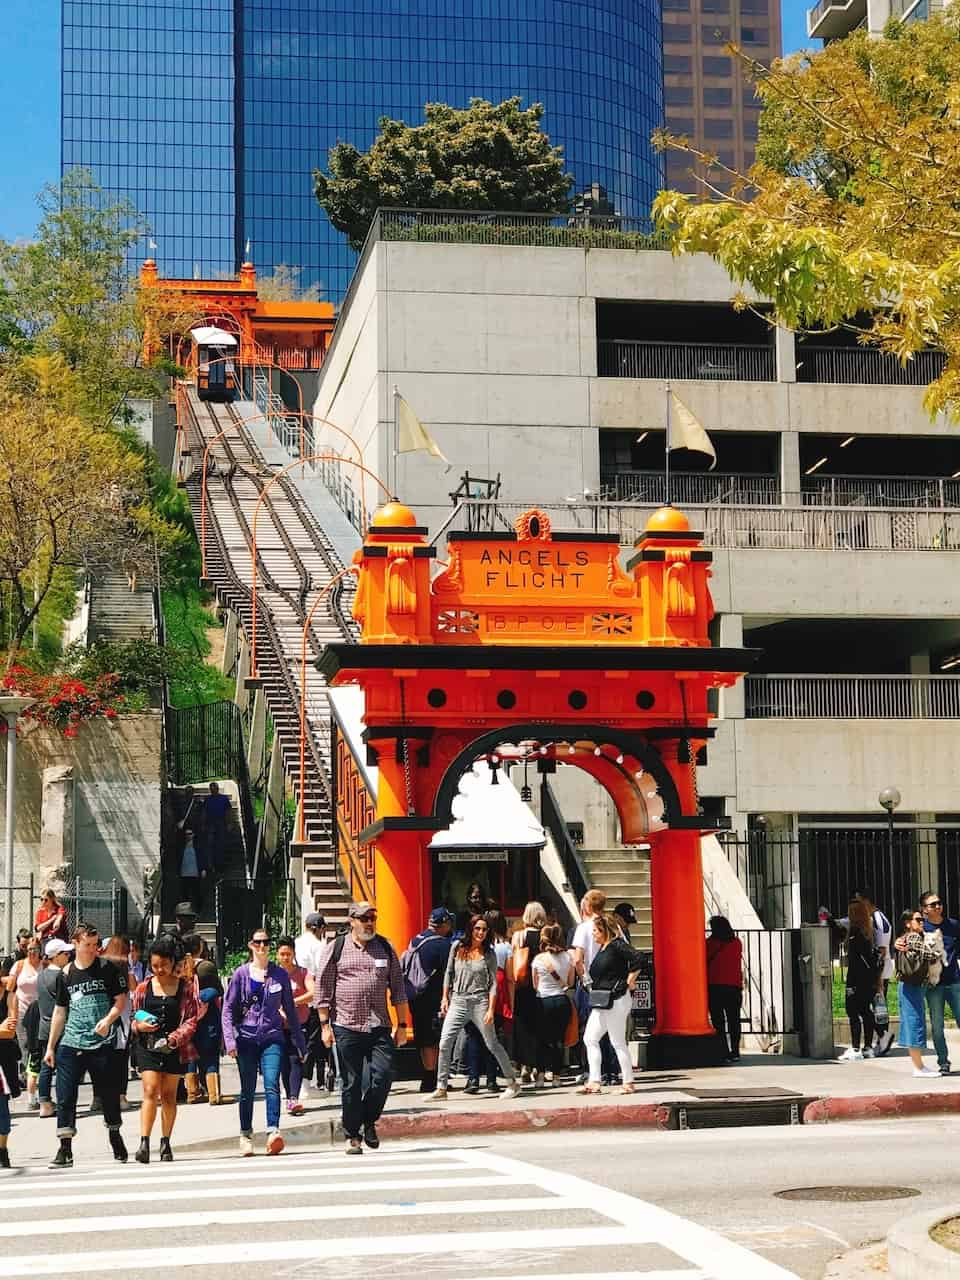 Things to do with kids in downtown LA